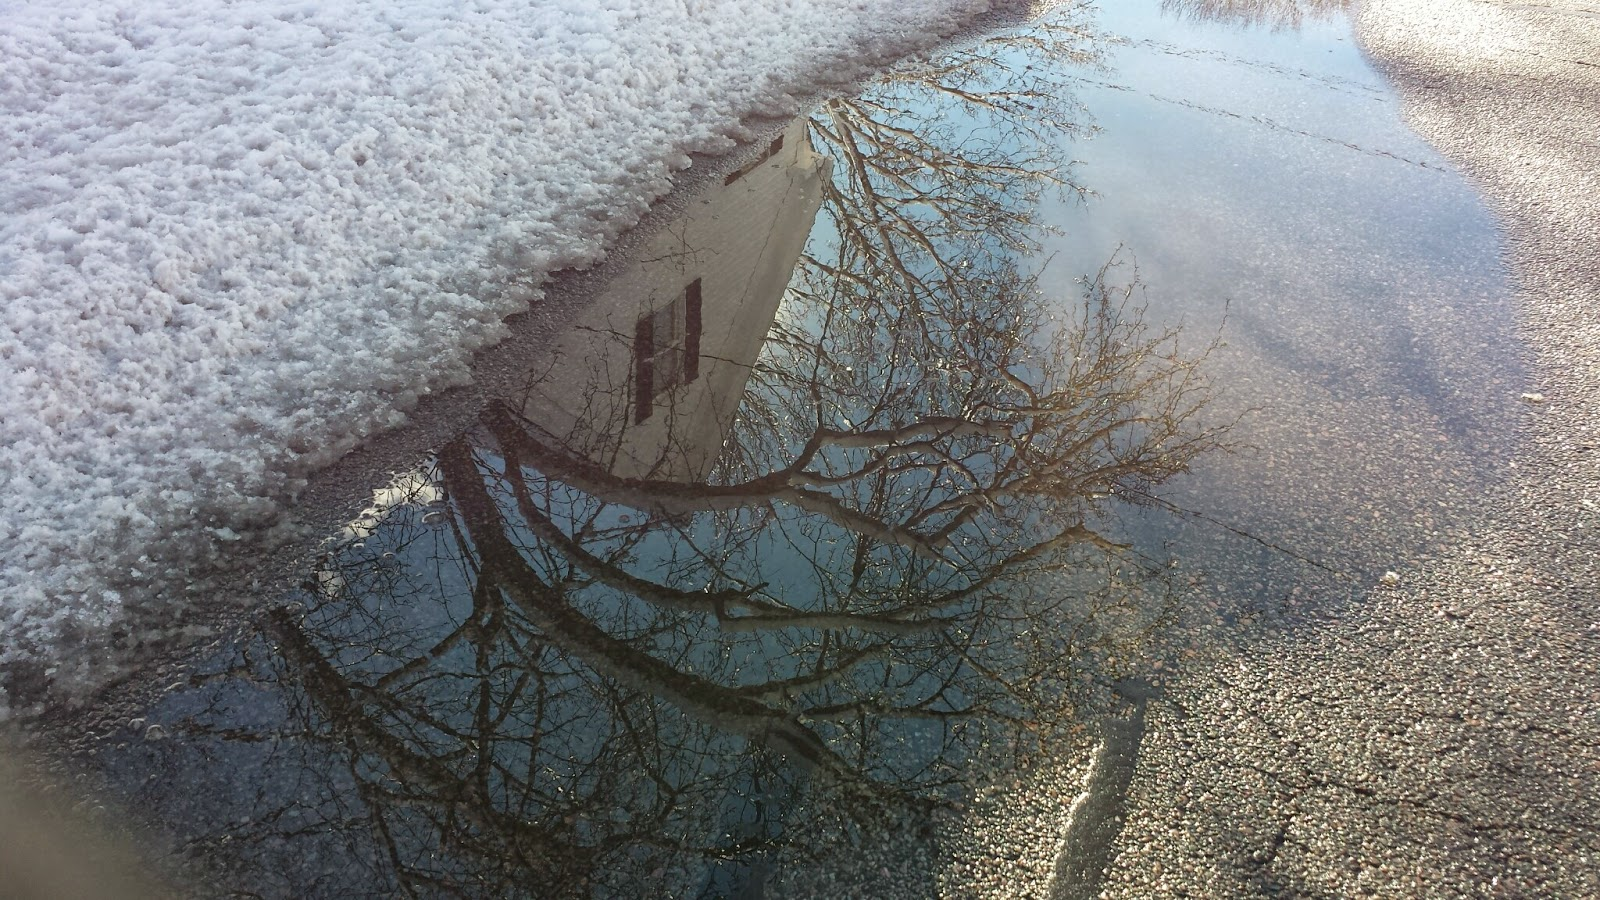 biggest puddle and best reflection on the walk